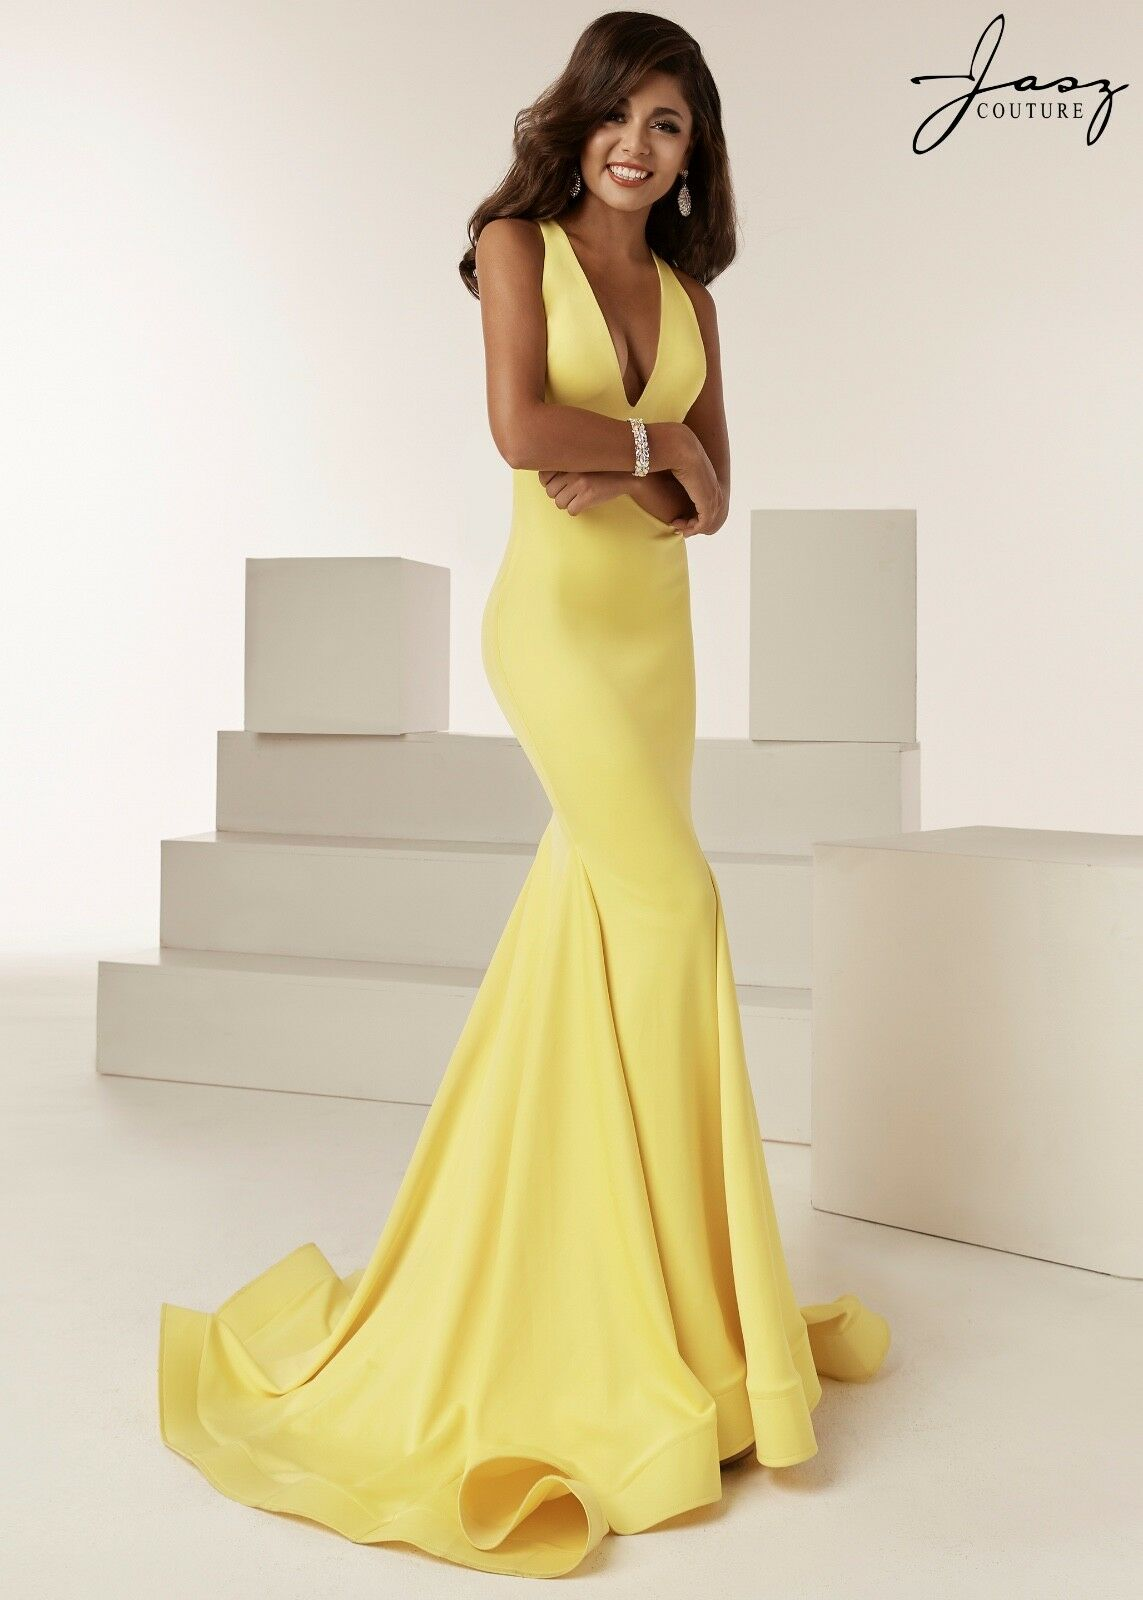 JASZ COUTURE 6222   Prom Wedding Homecoming   New, 100% Authentic, Free Shipping